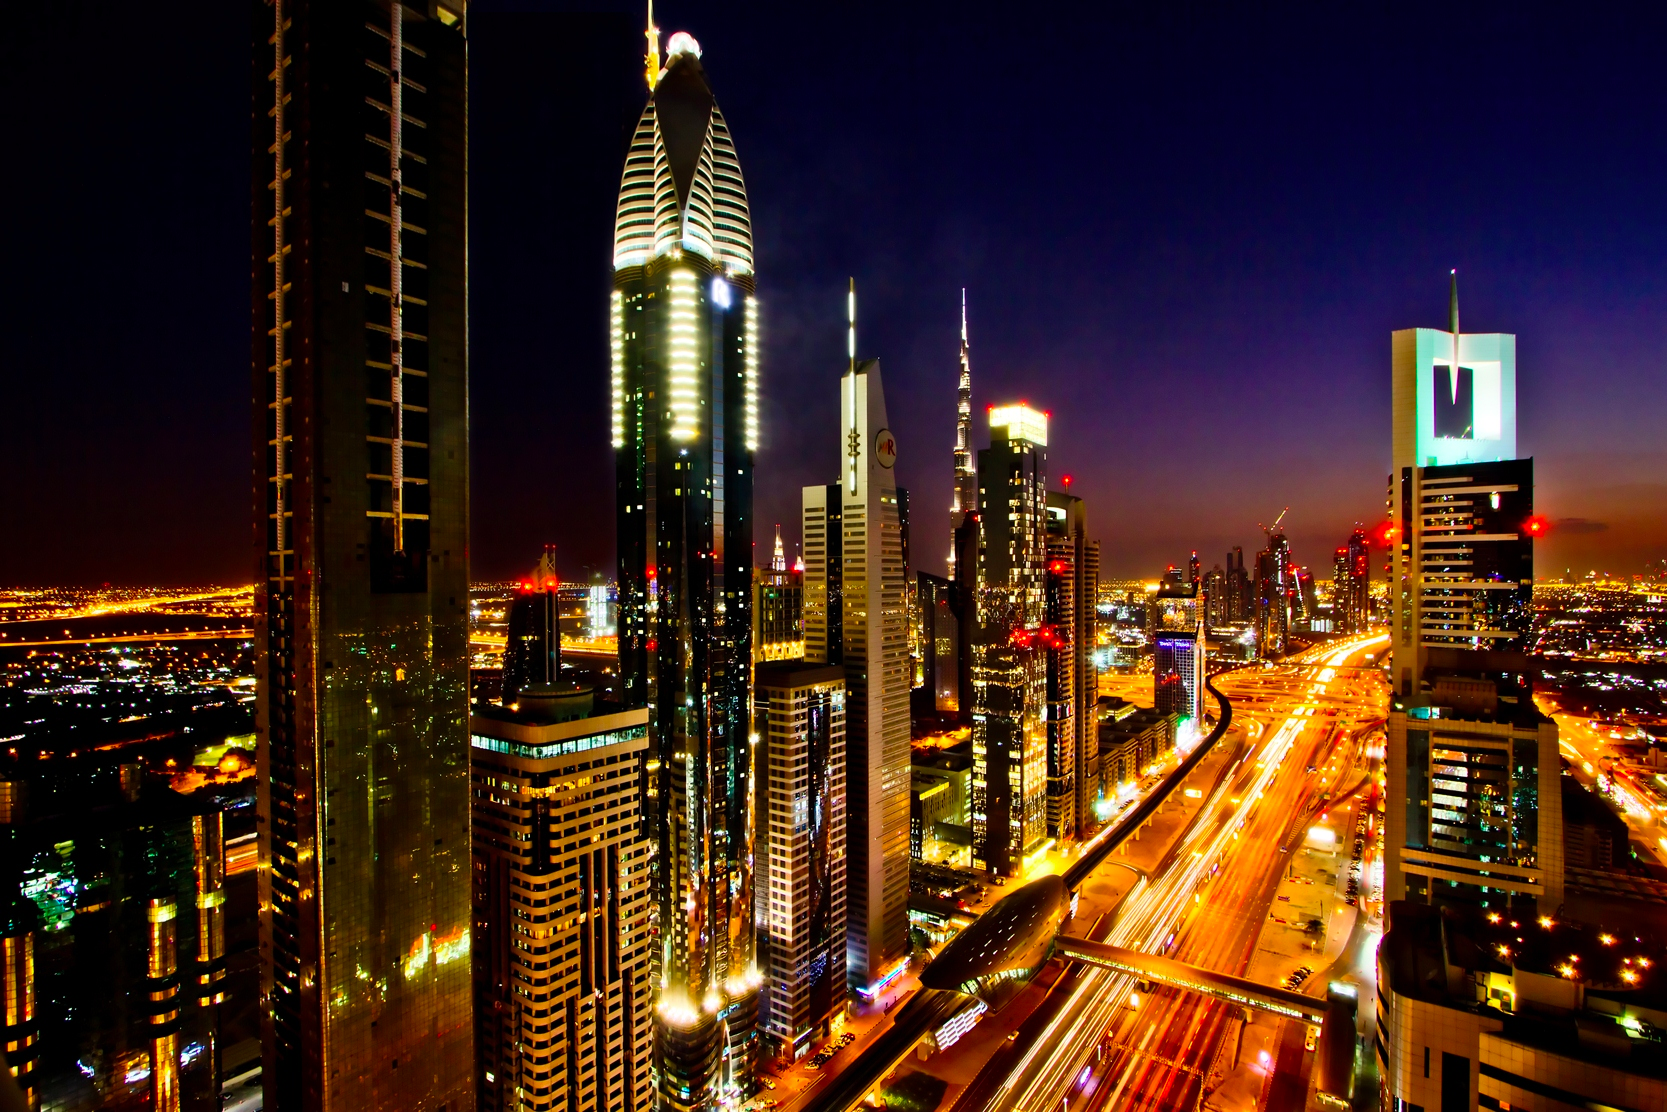 The Sheikh Zayed Road in Dubai as it looks today. It is the main artery of the thriving city.